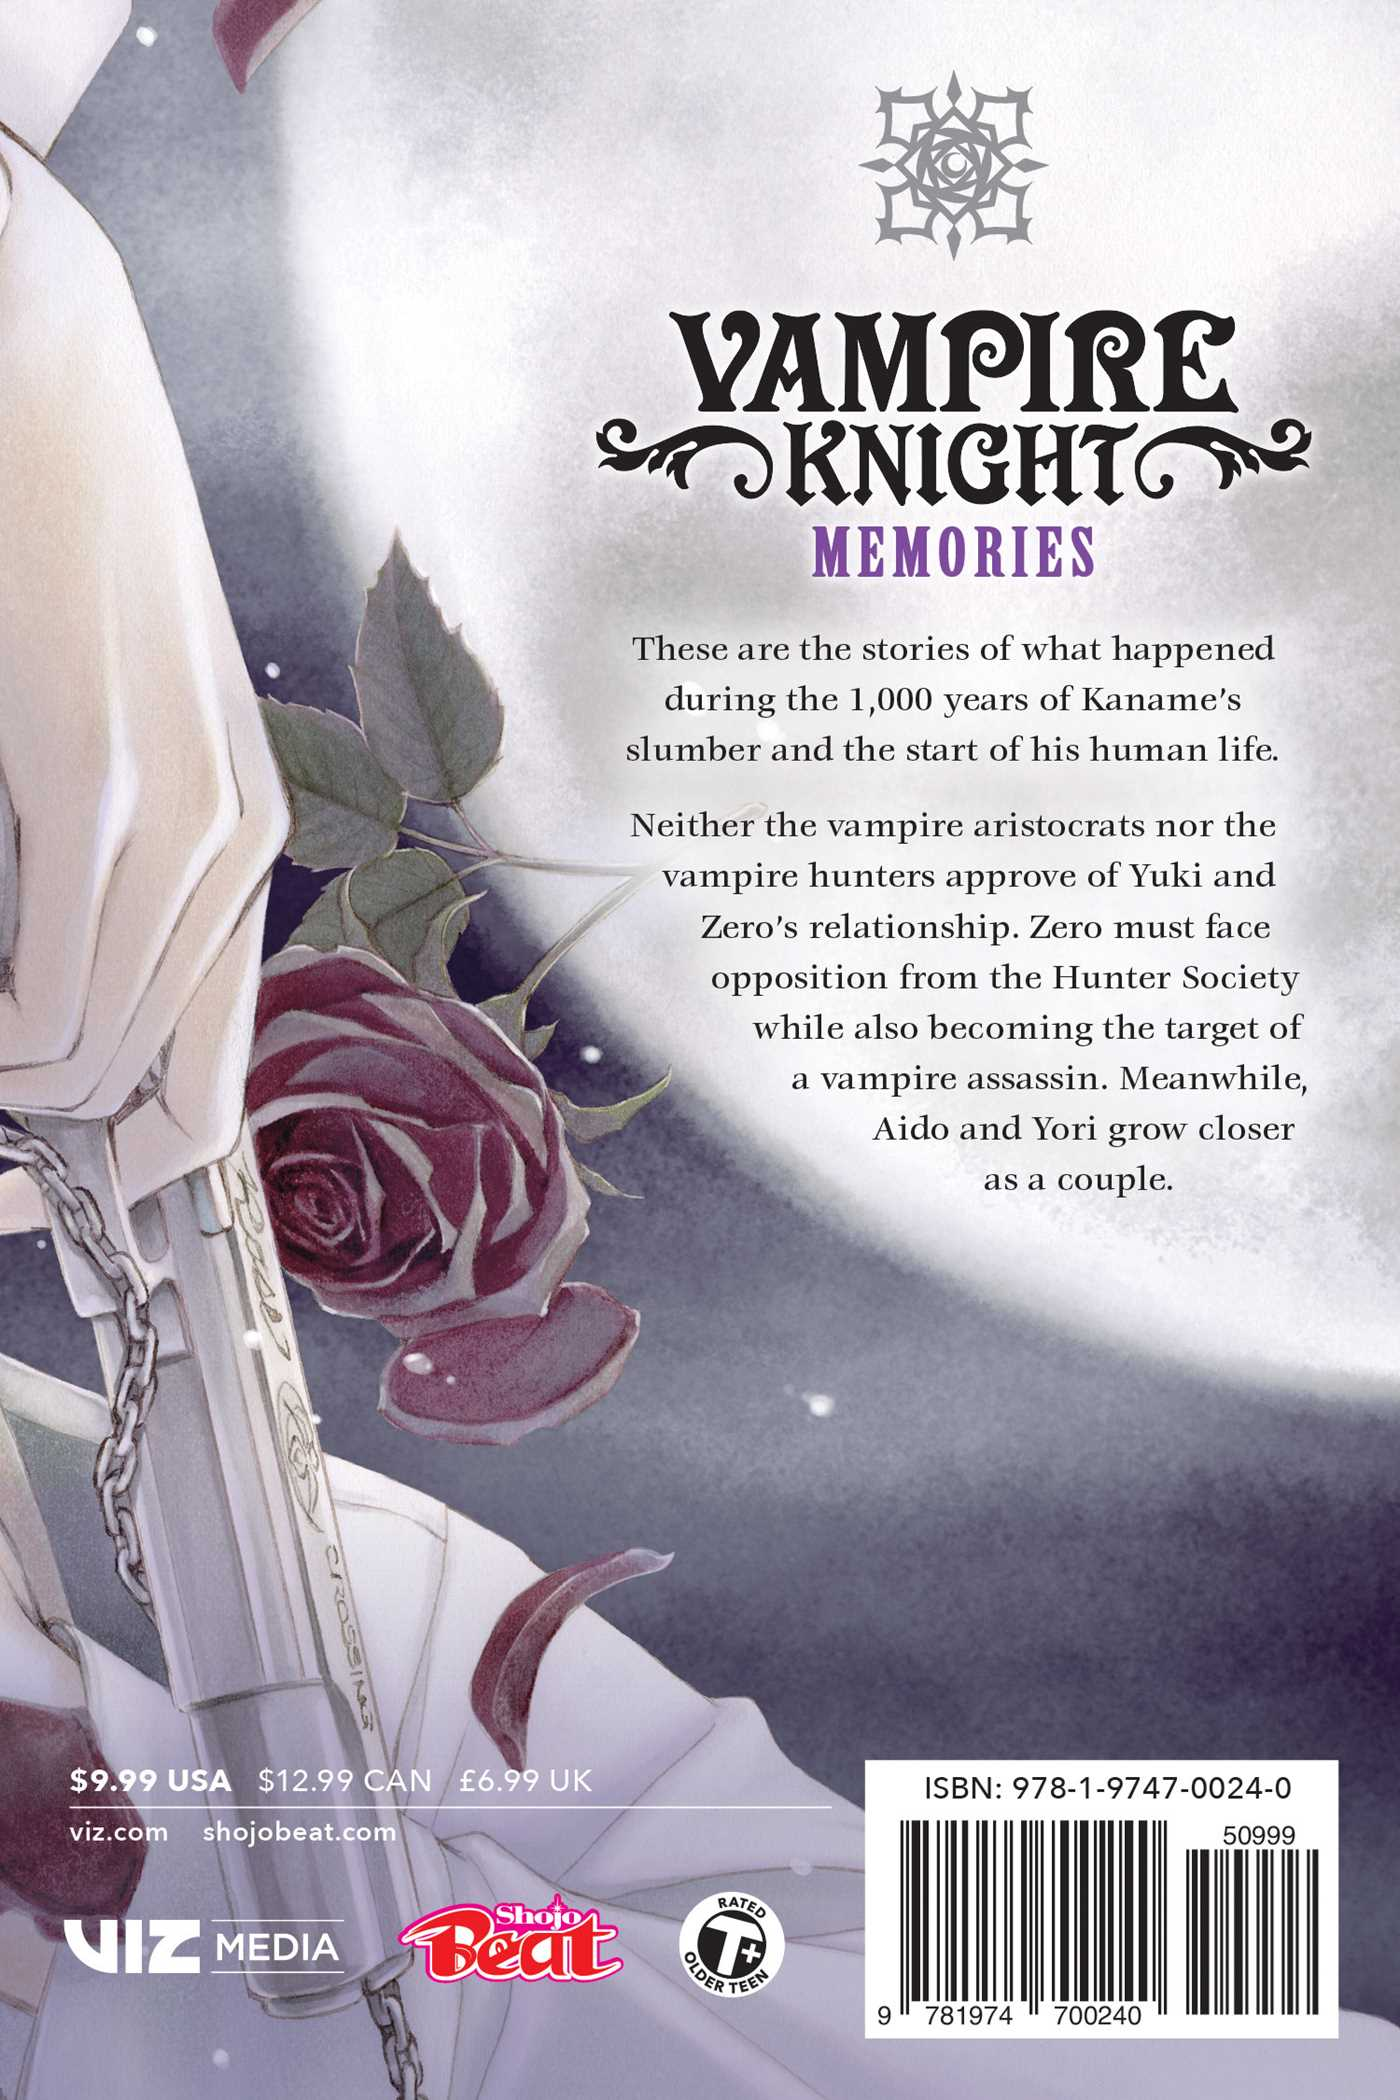 Vampire knight memories vol 2 9781974700240 hr back